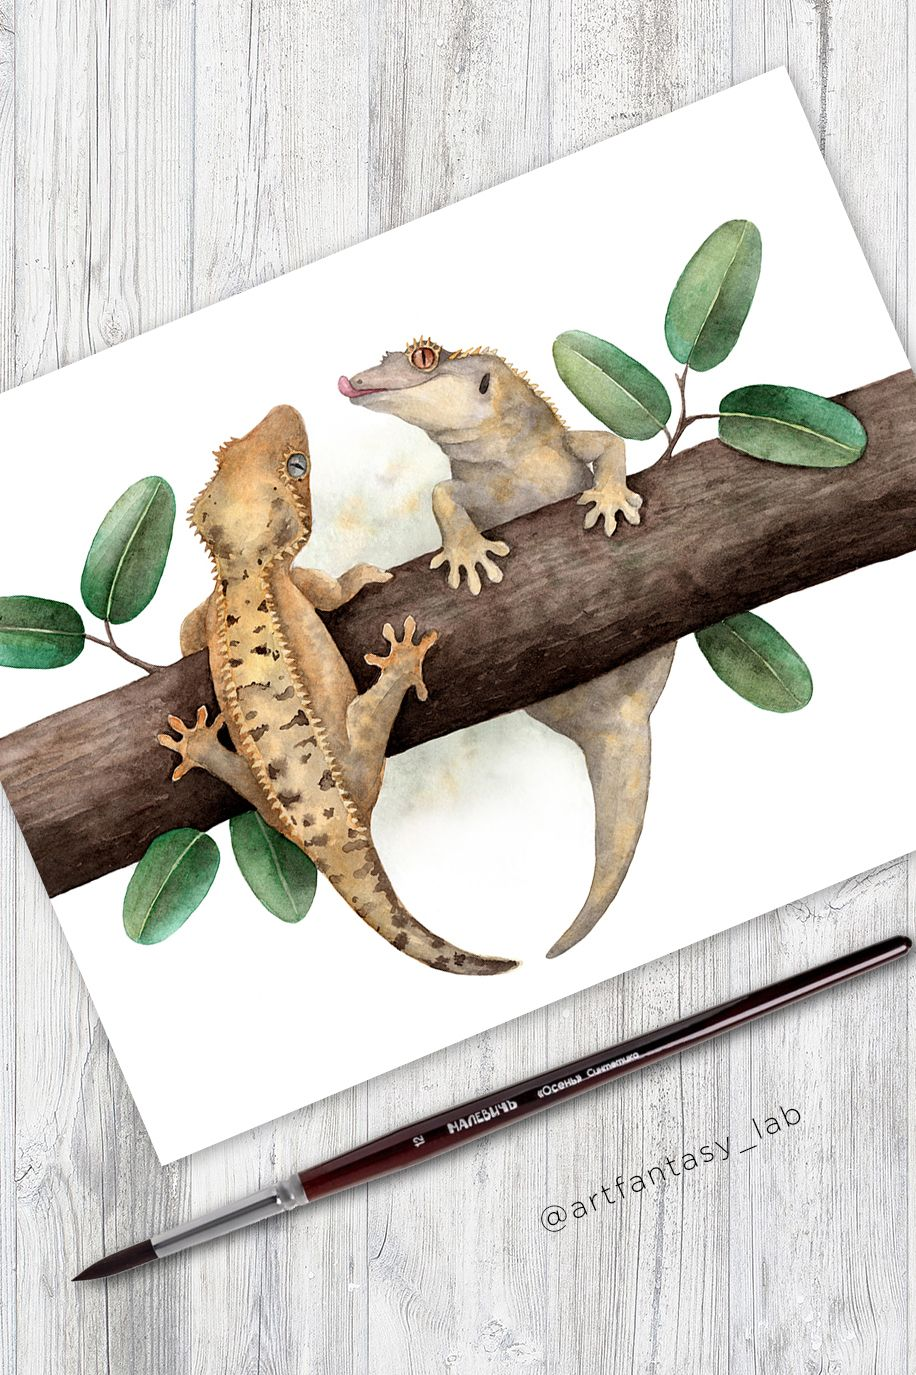 Gecko Wall Art Reptile Poster Crested Gecko Reptile Decor Etsy In 2020 Reptile Decor Gecko Wall Art Wall Art